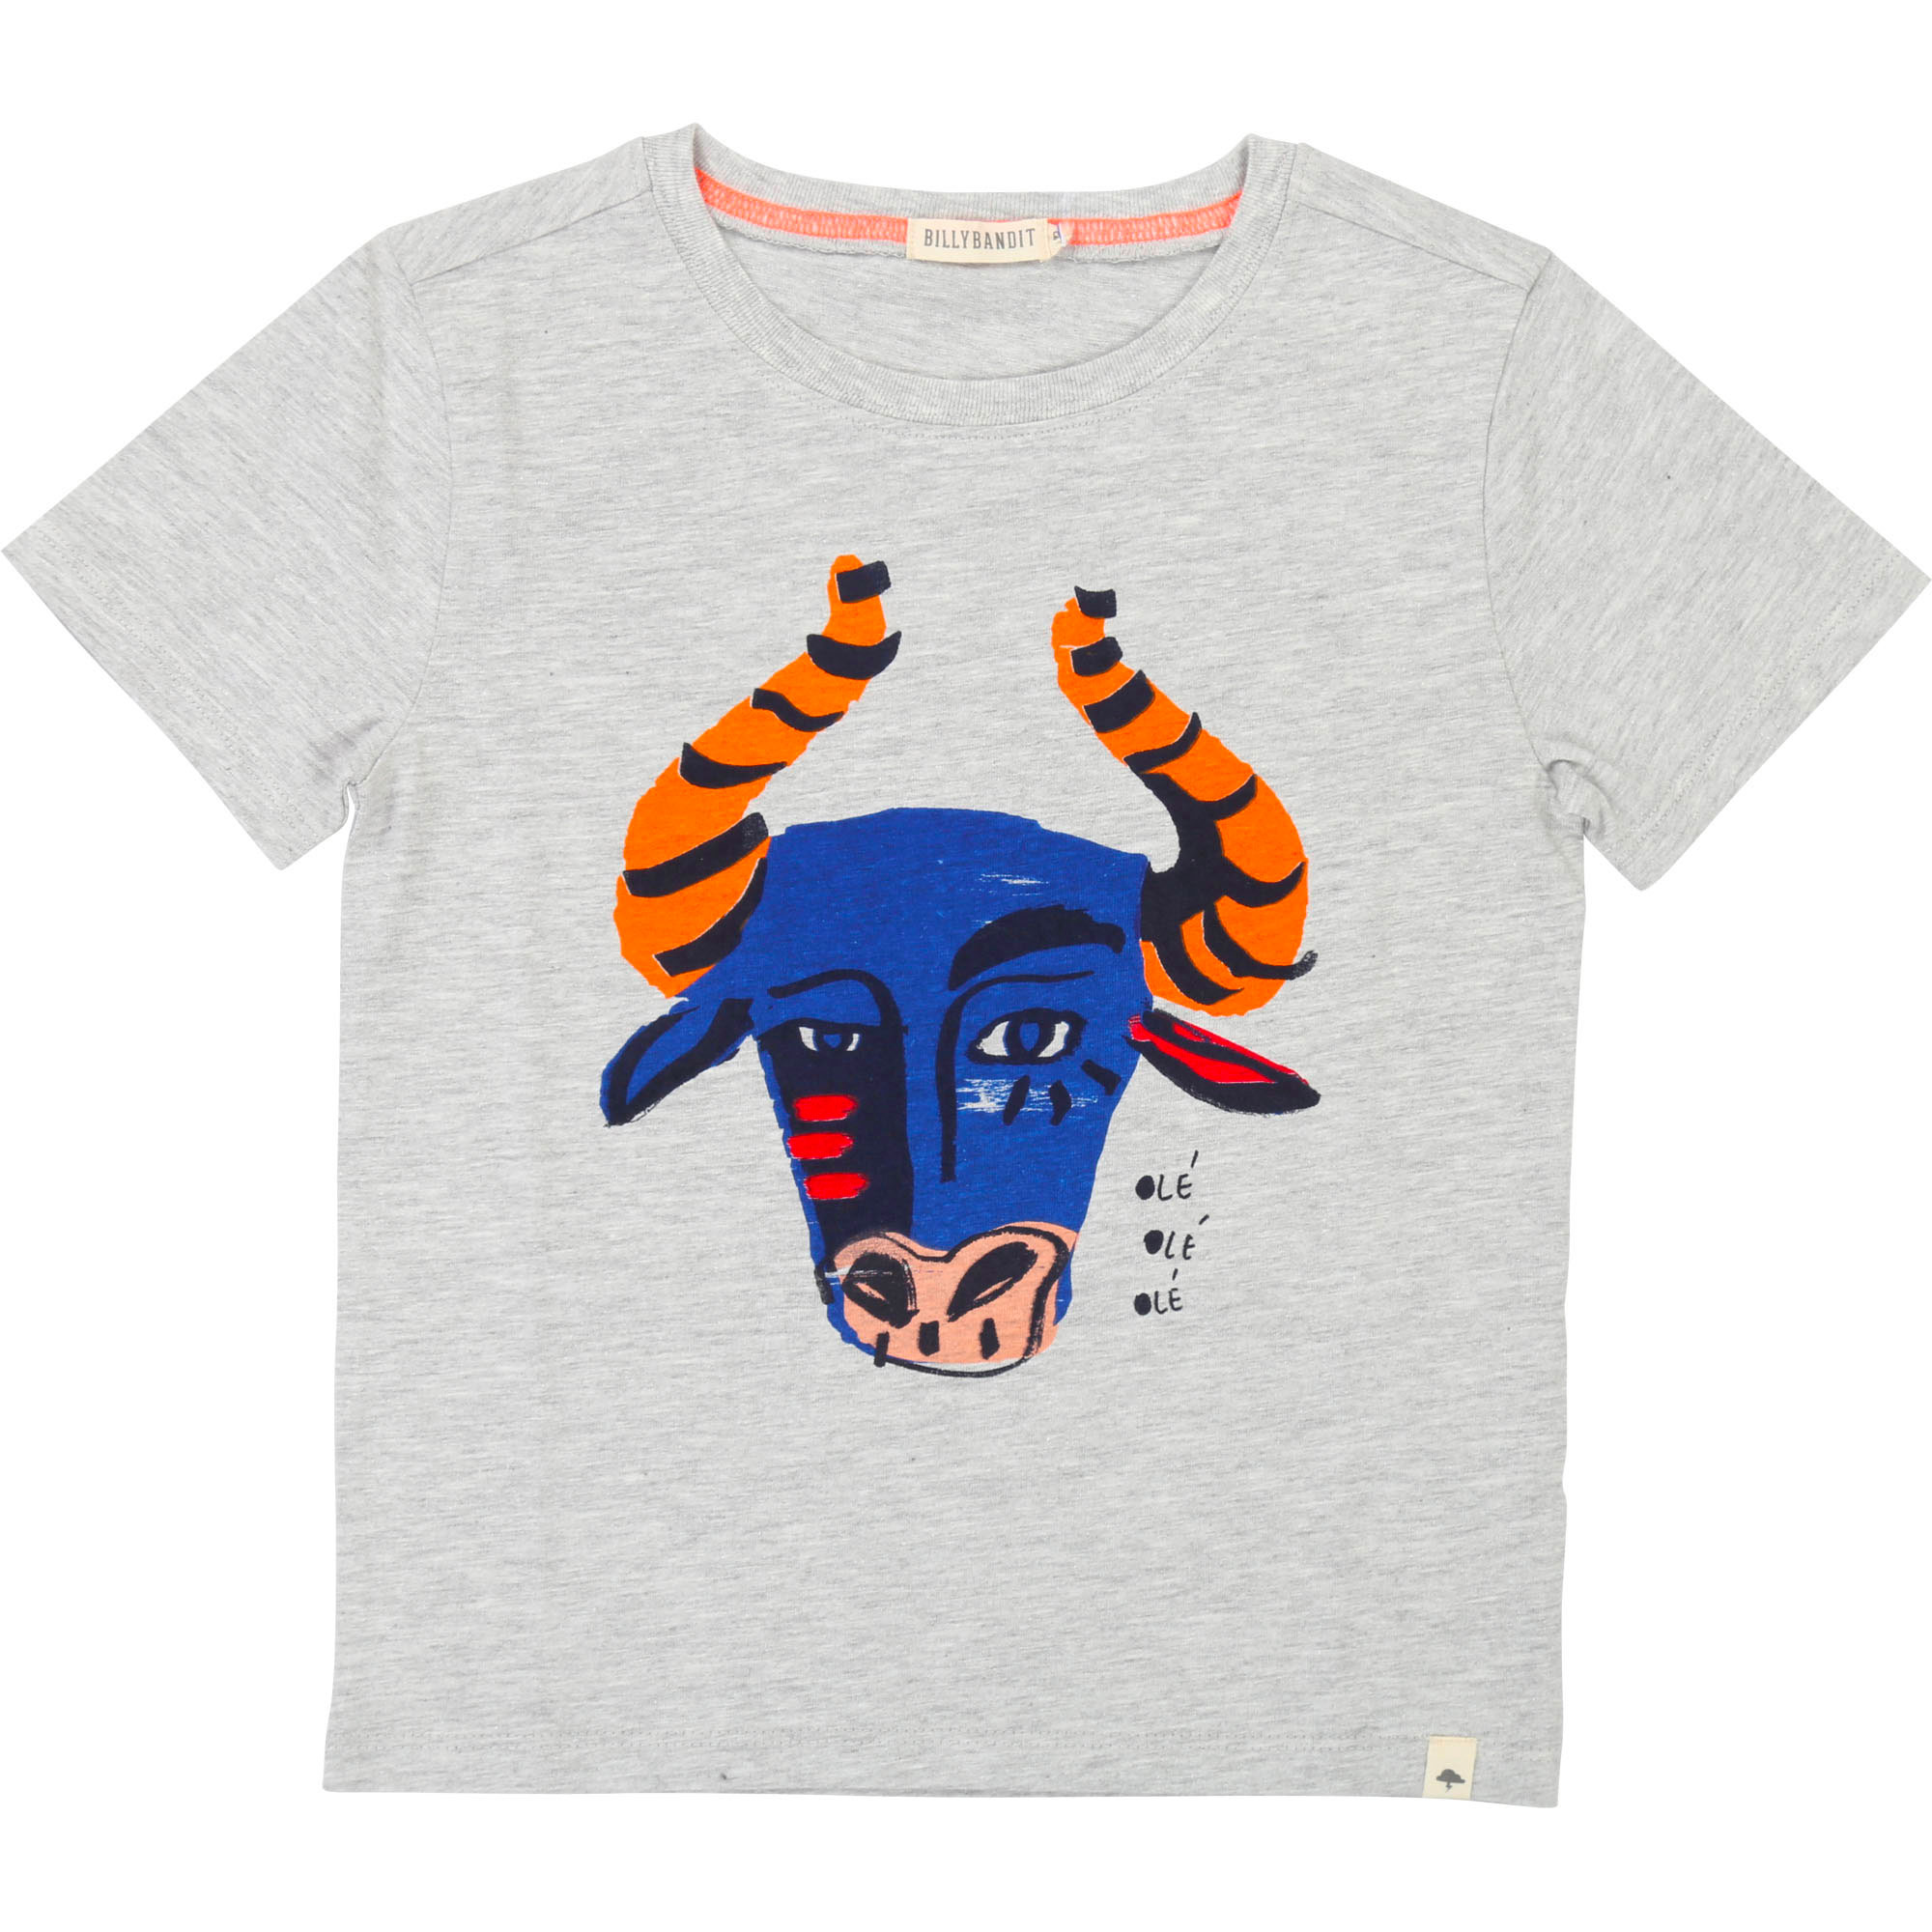 Cotton illustration T-shirt BILLYBANDIT for BOY